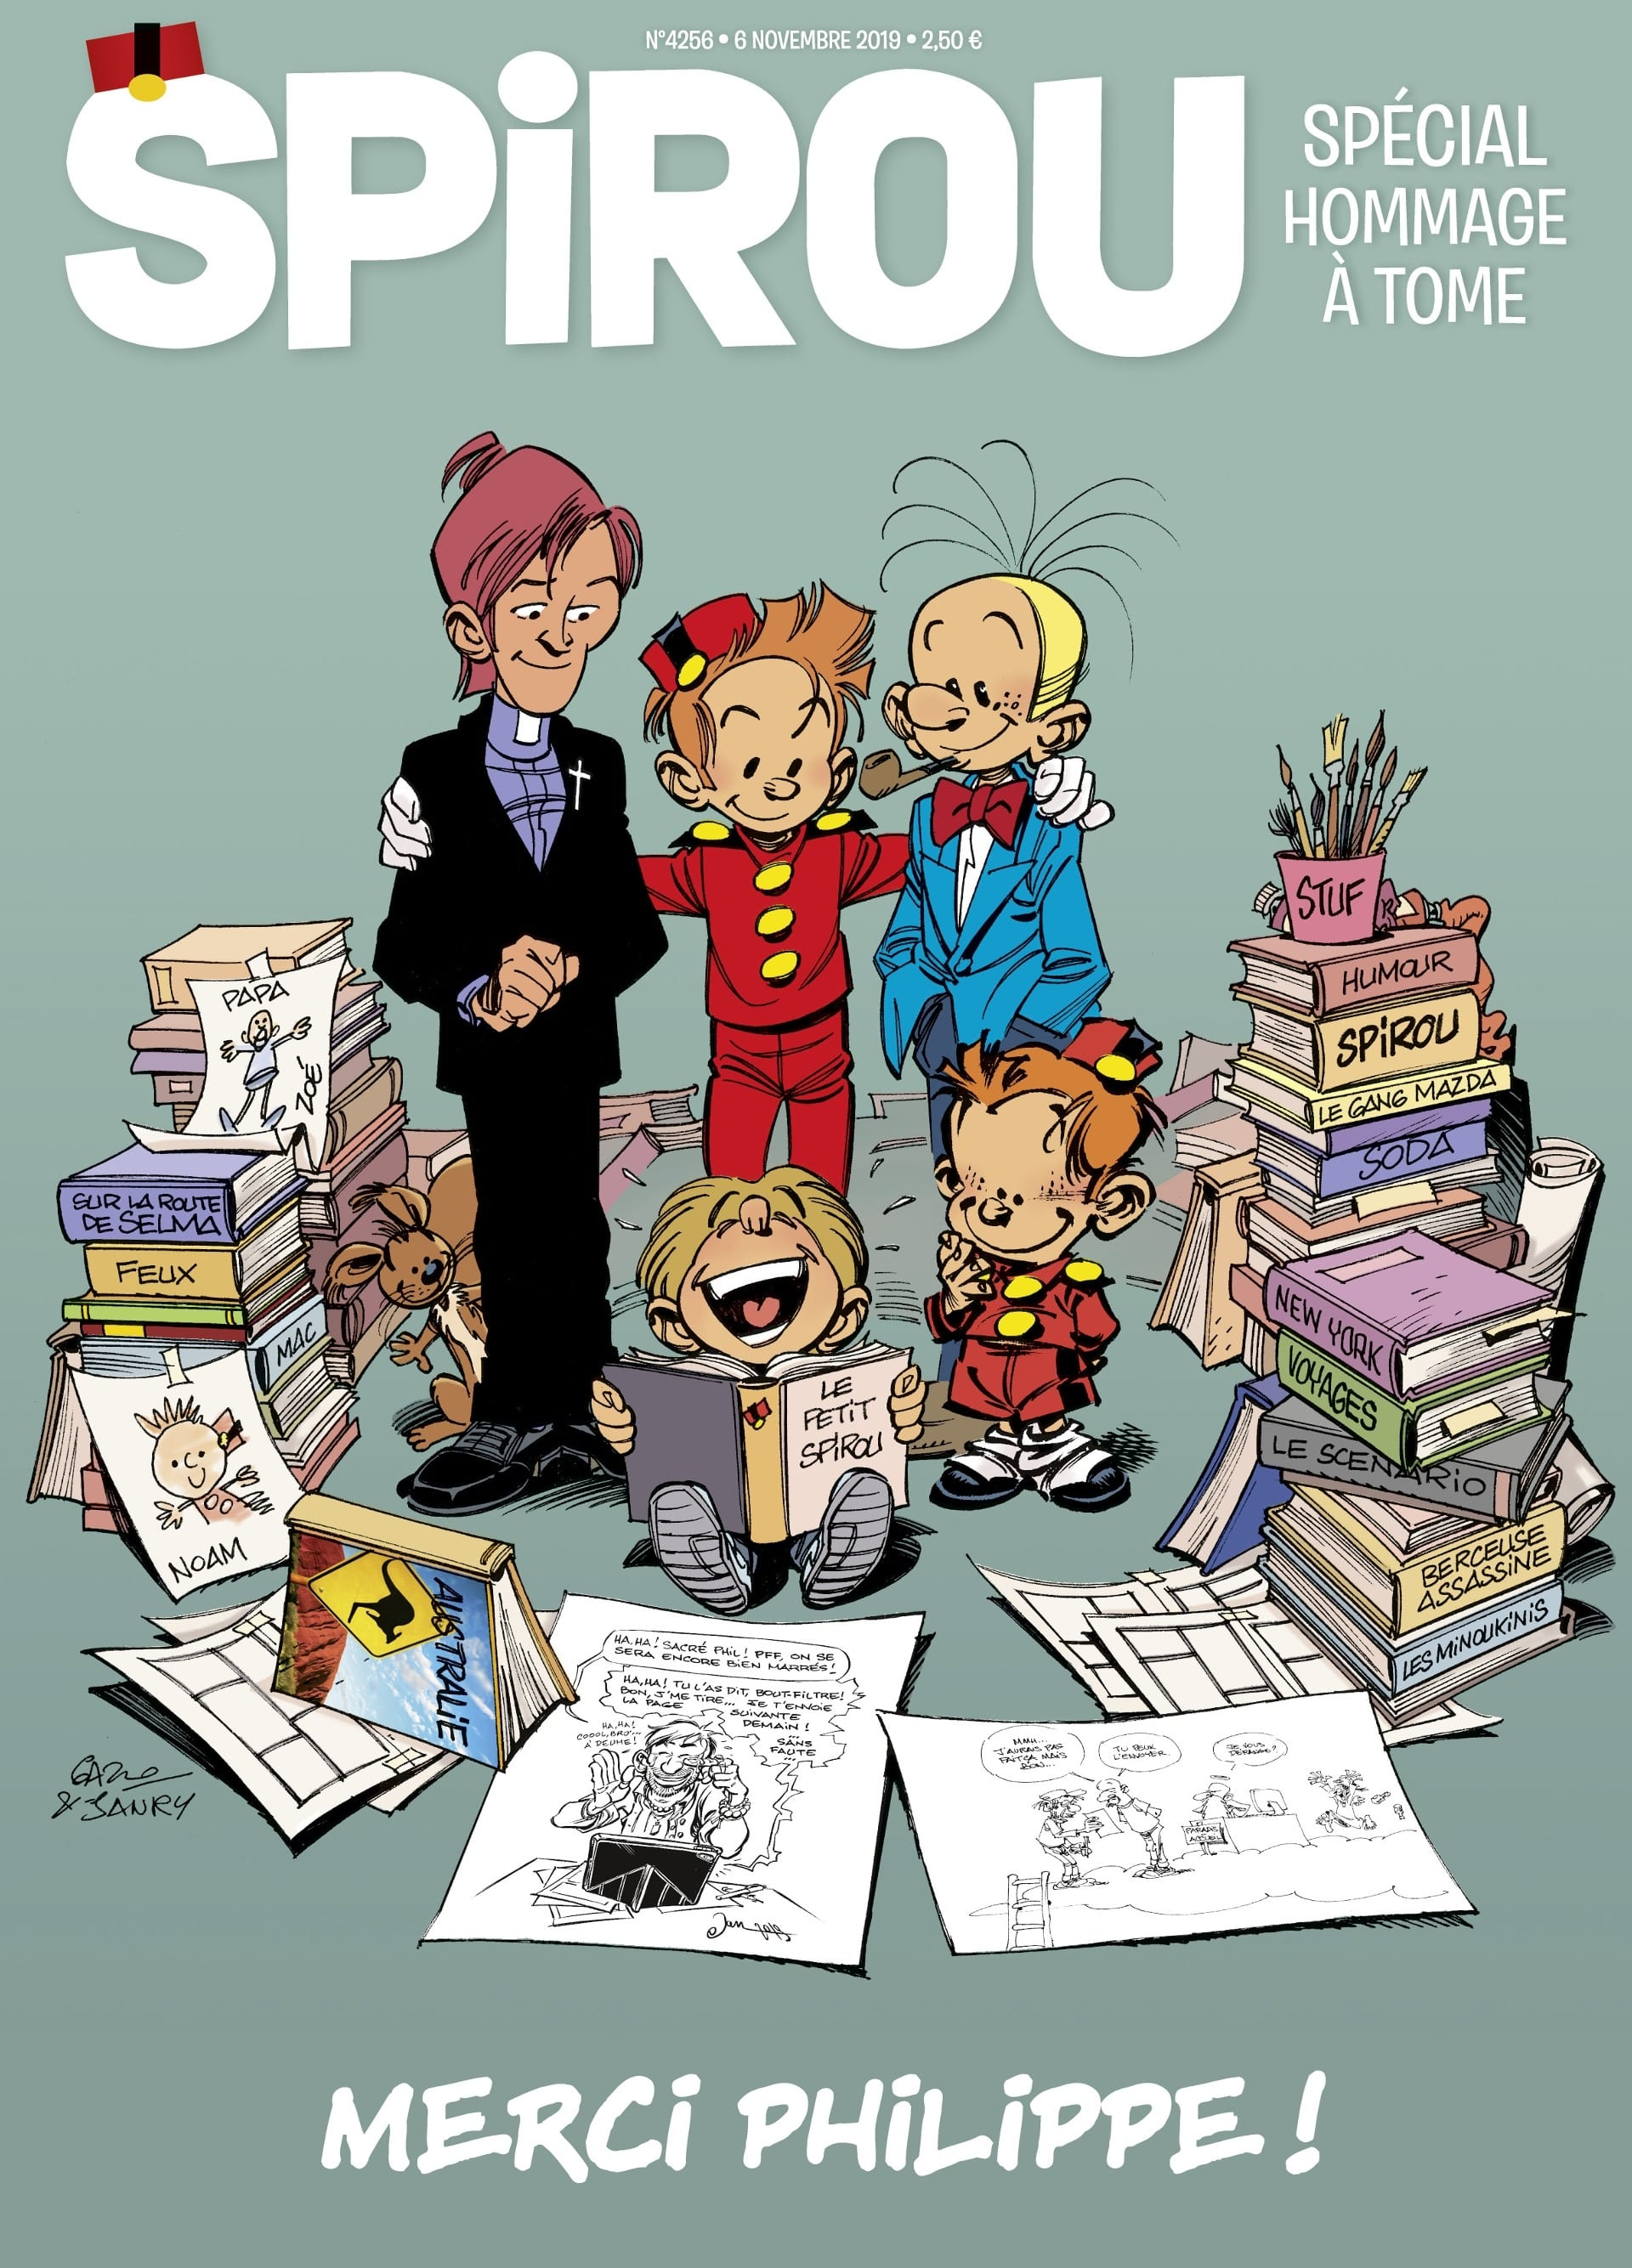 Spirou rend hommage à Tome